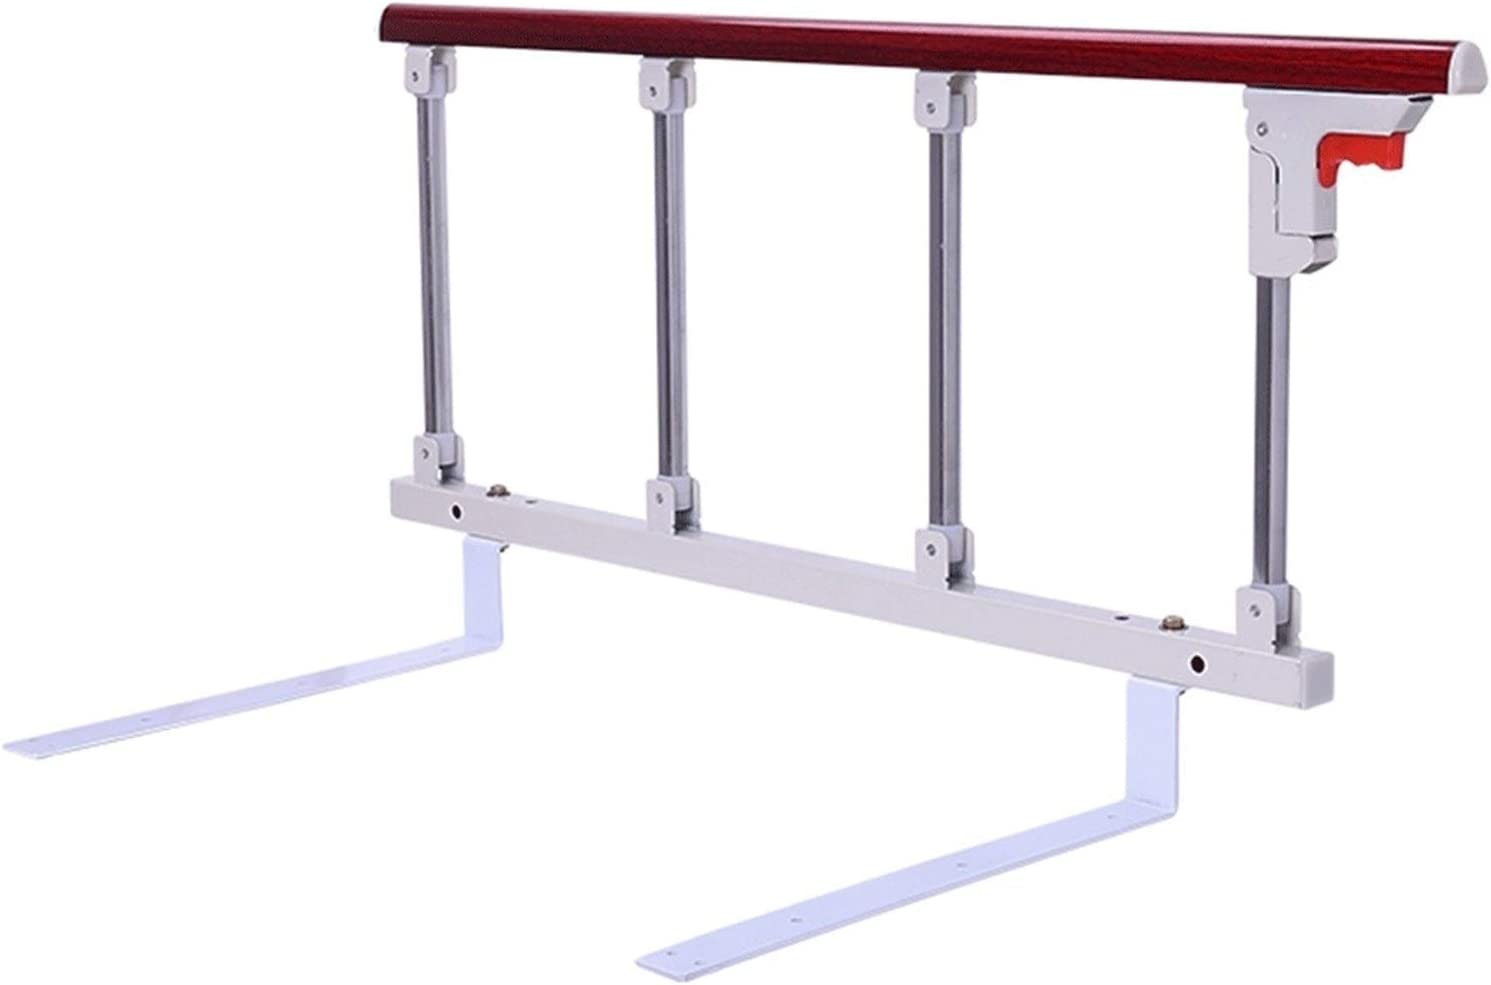 Anti-falling New life Bed Railings Guardrail Fence Sale price T For